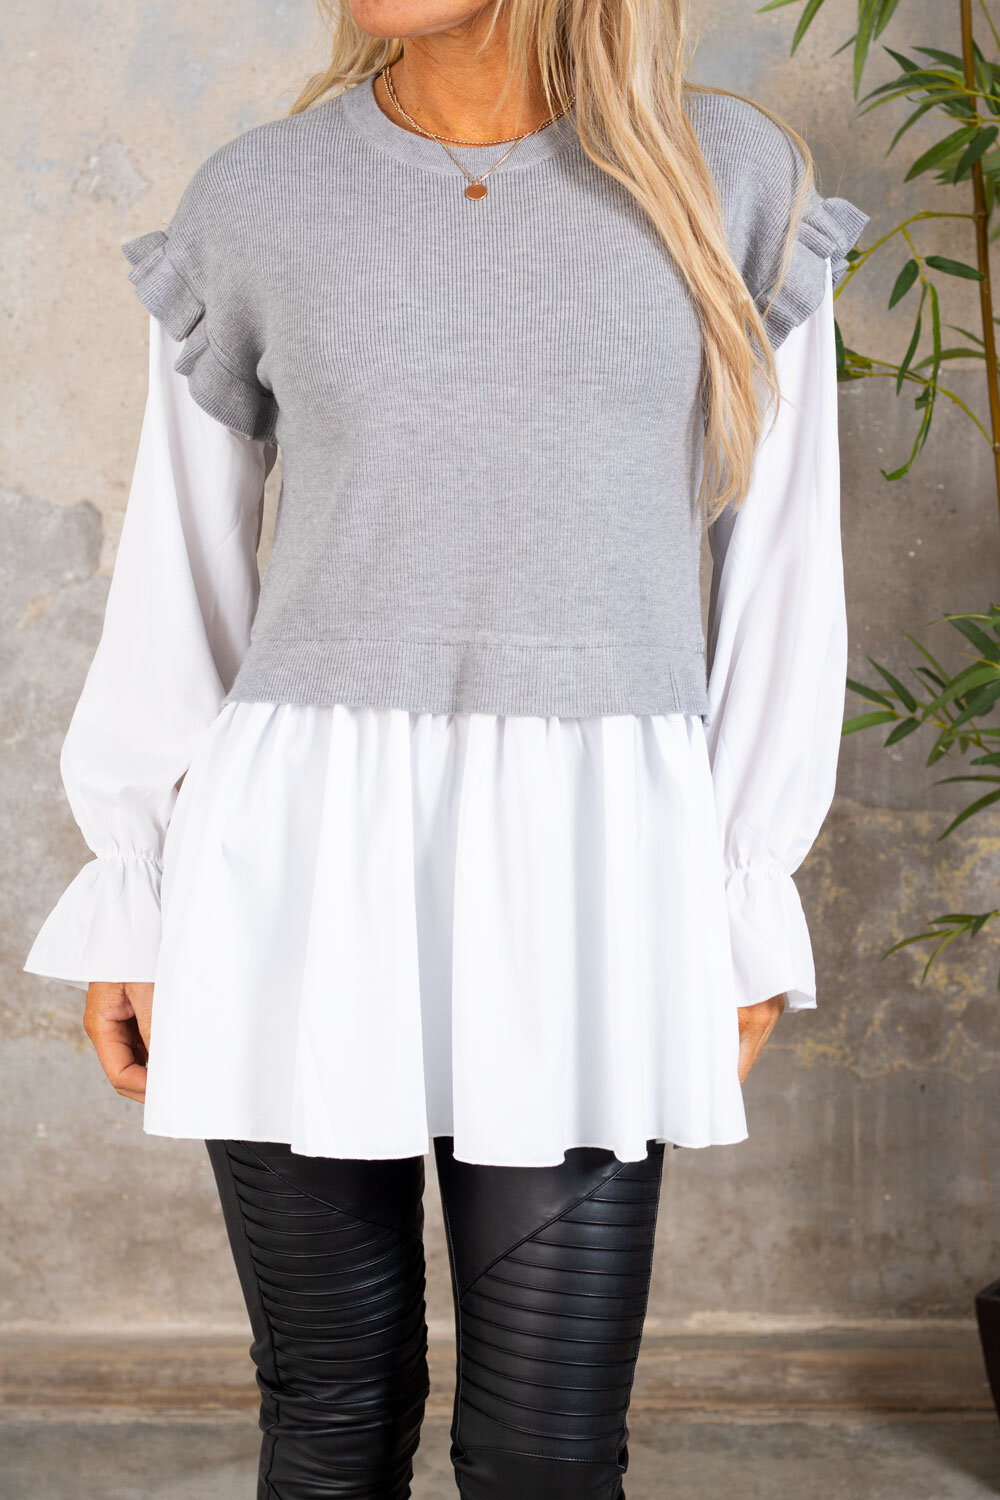 Gwen - Sweater with Blouse - Gray